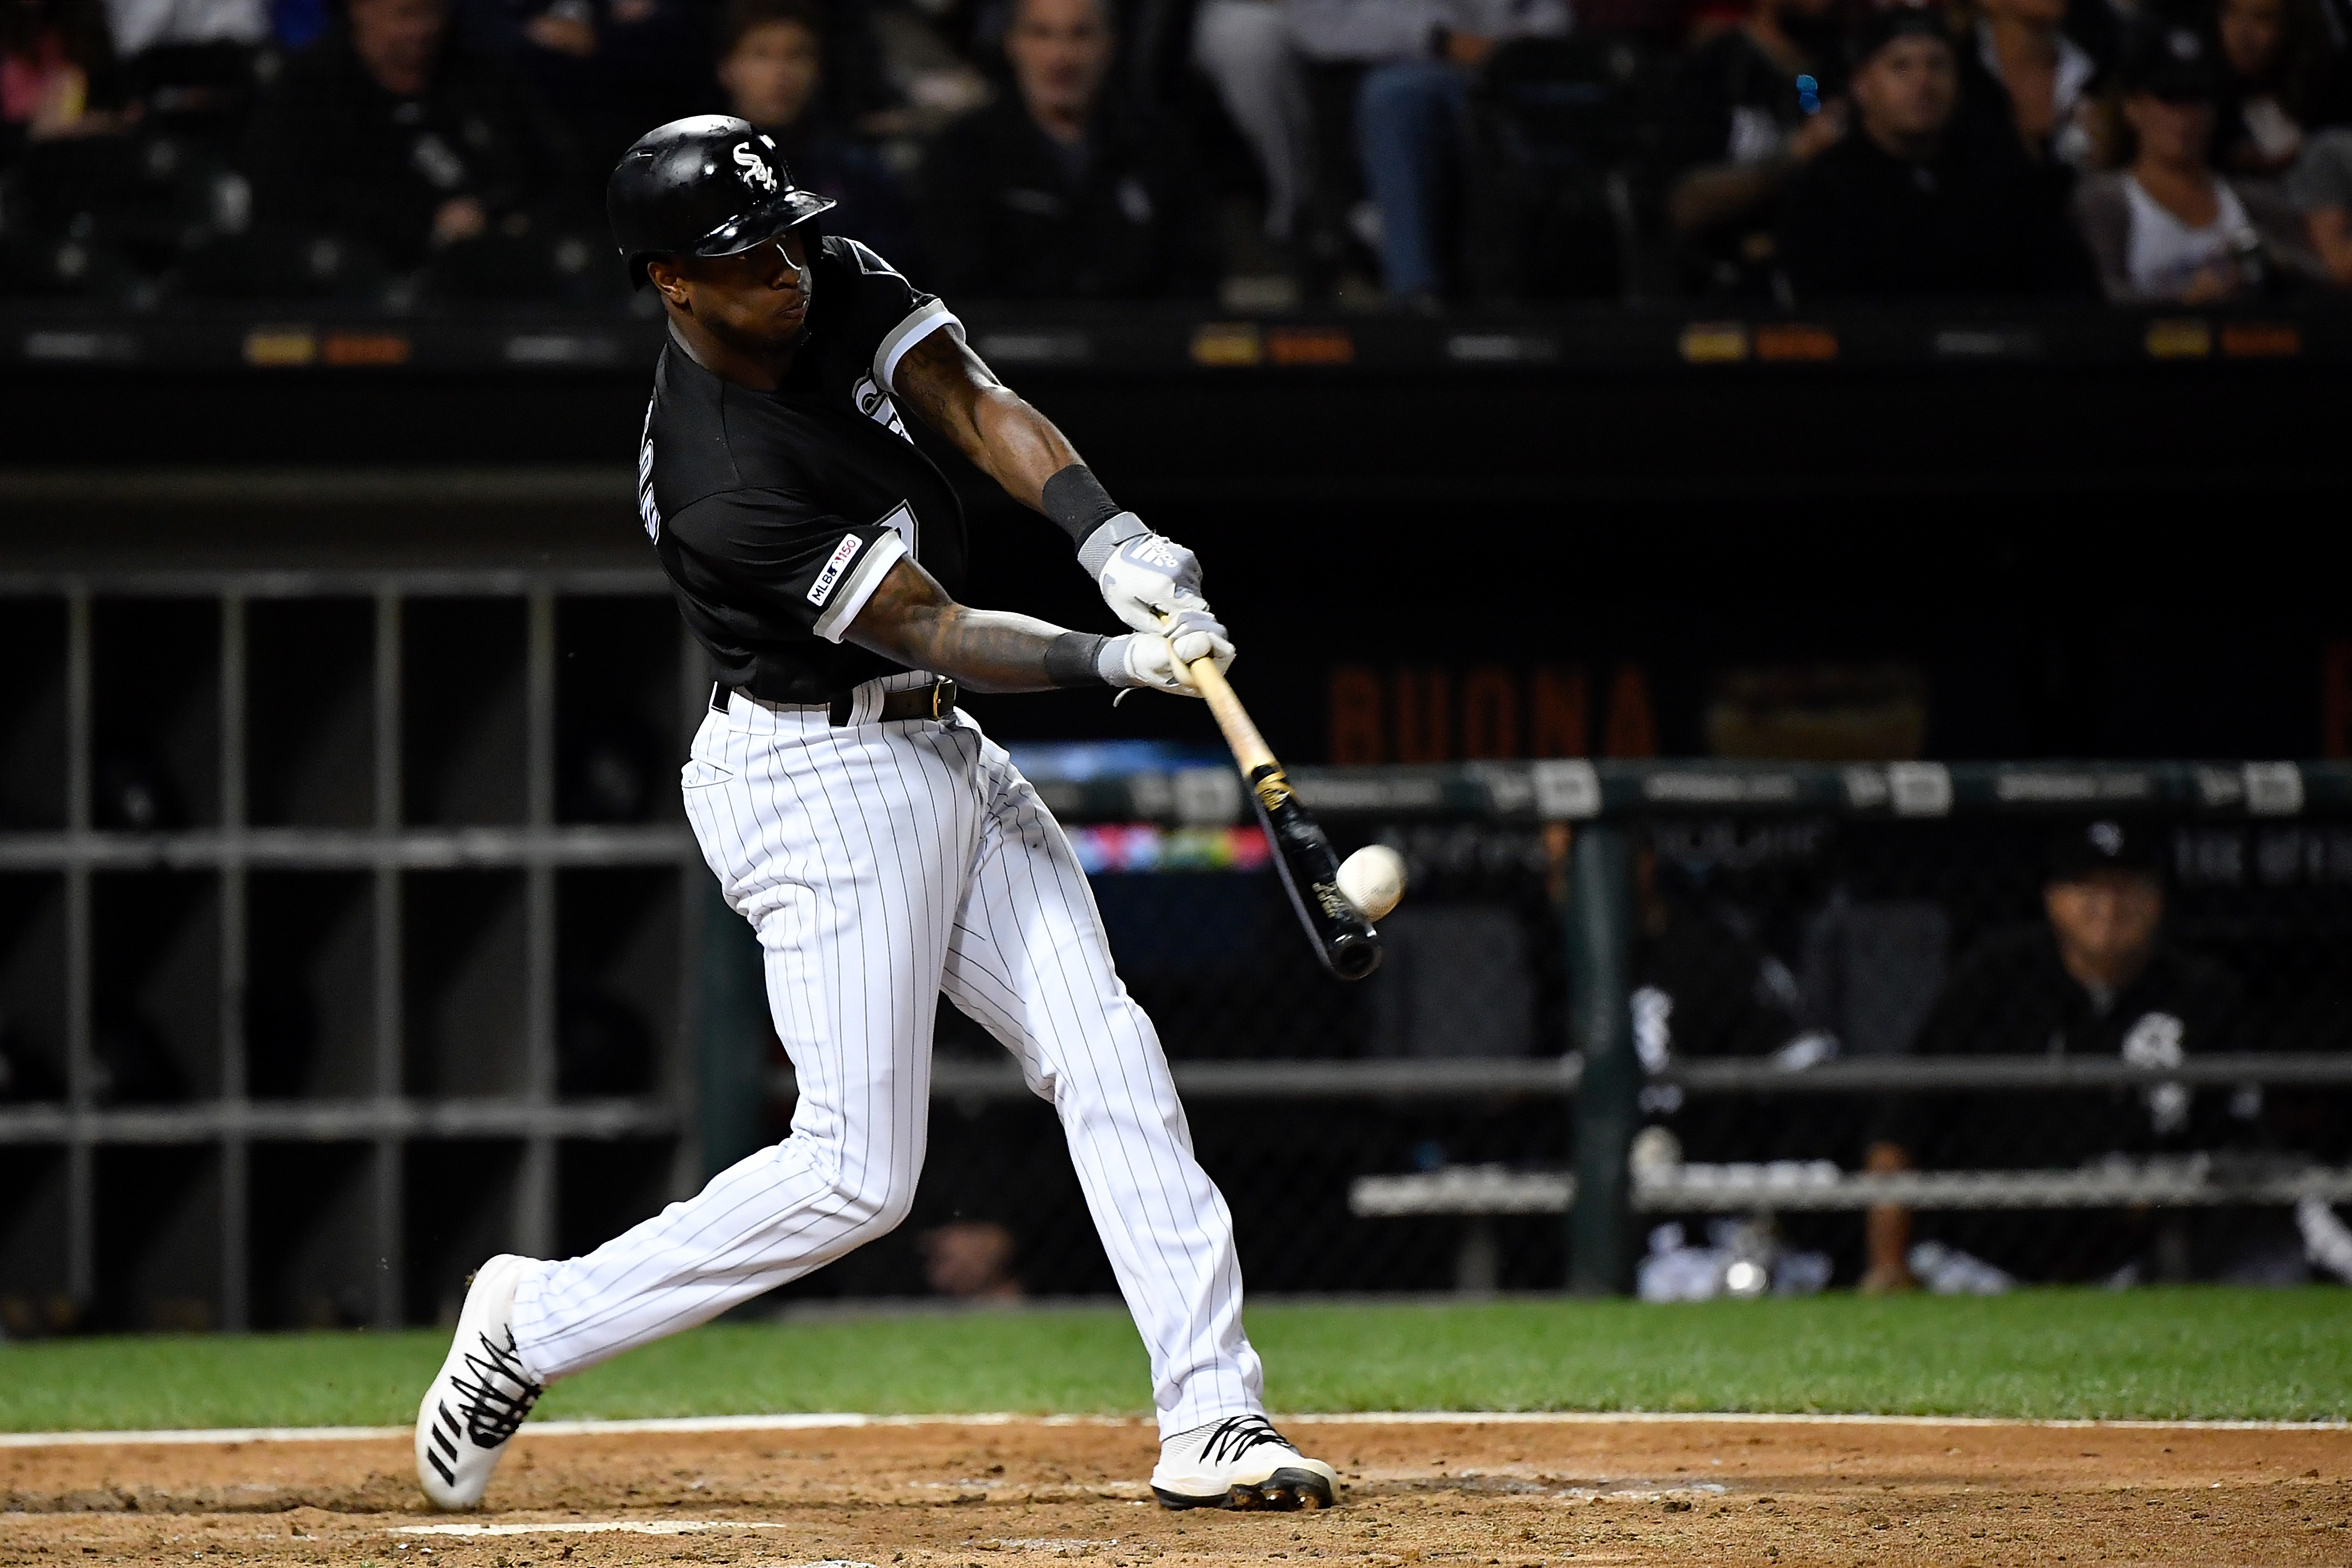 White Sox shortstop Tim Anderson has an .869 OPS this season, 110 points higher than the average major-league OPS.